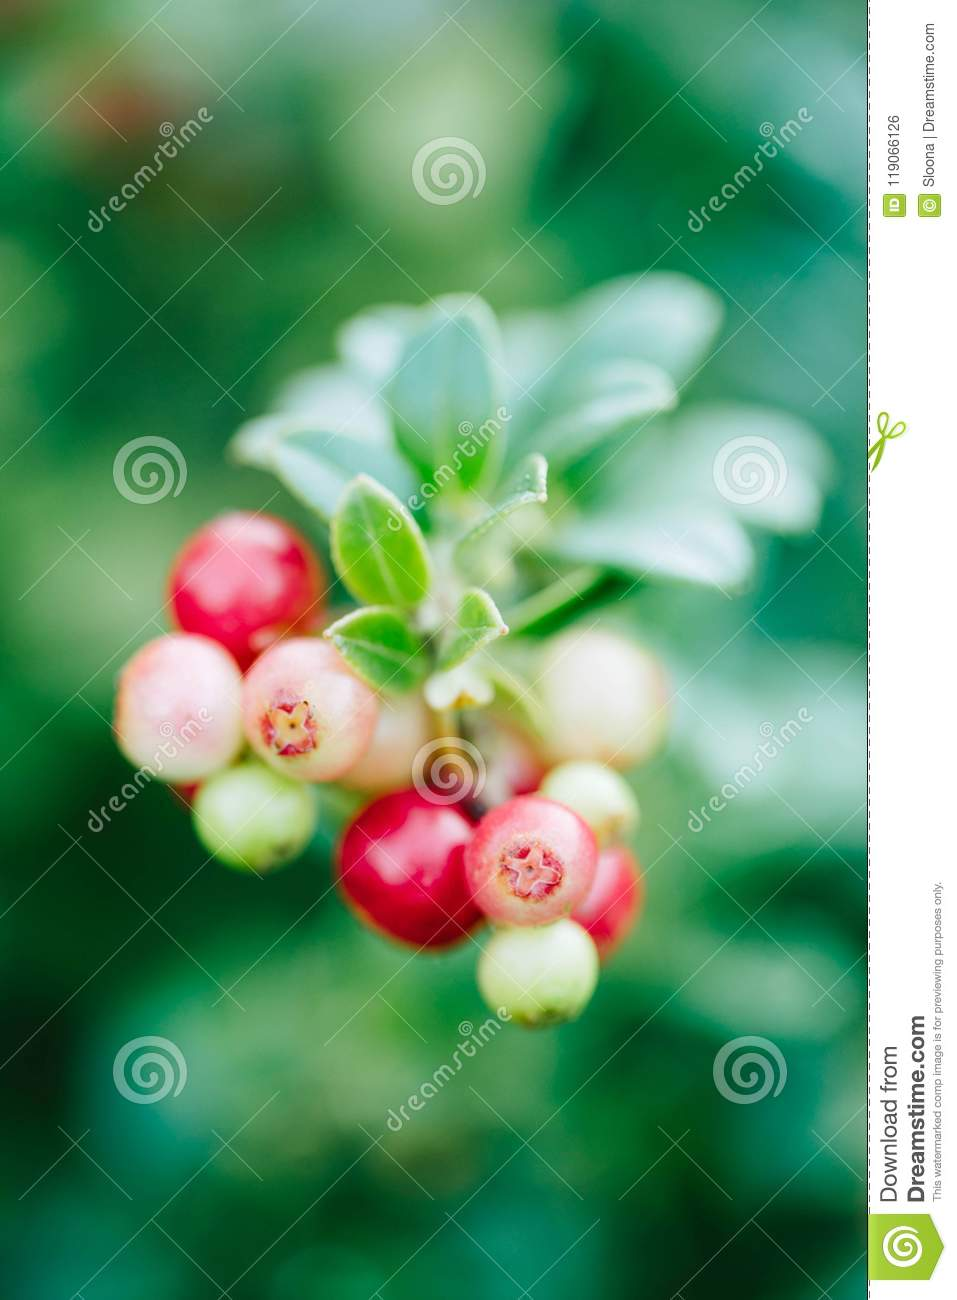 Wild red berries cowberry, foxberry, lingonberry with leaves closeup. Raw, organic materials fro skincare